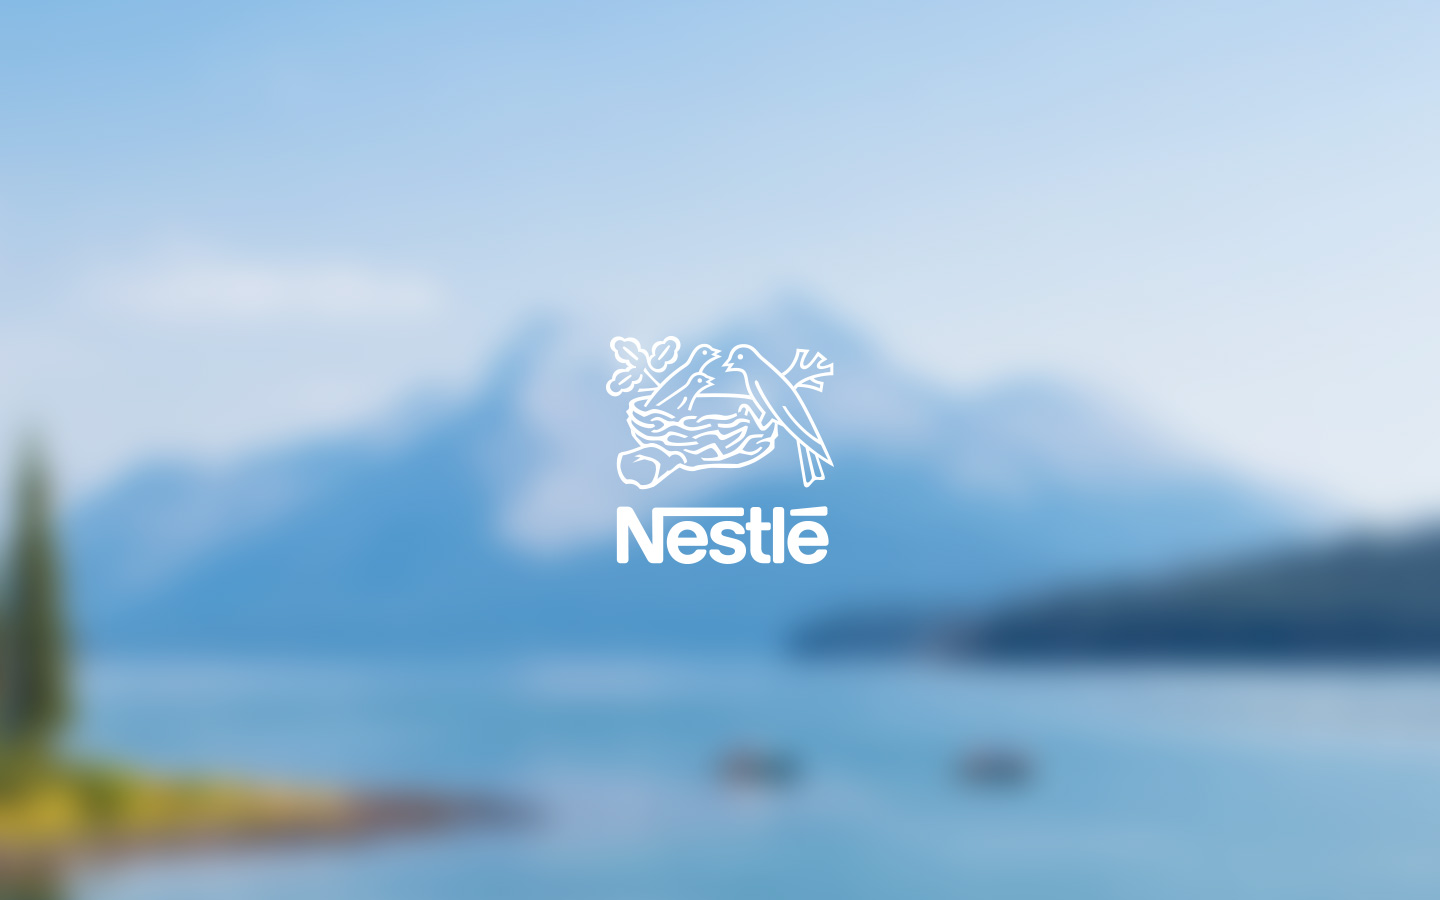 Top Hd Wallpapers For Android Nestle Wallpaper Hd Full Hd Pictures